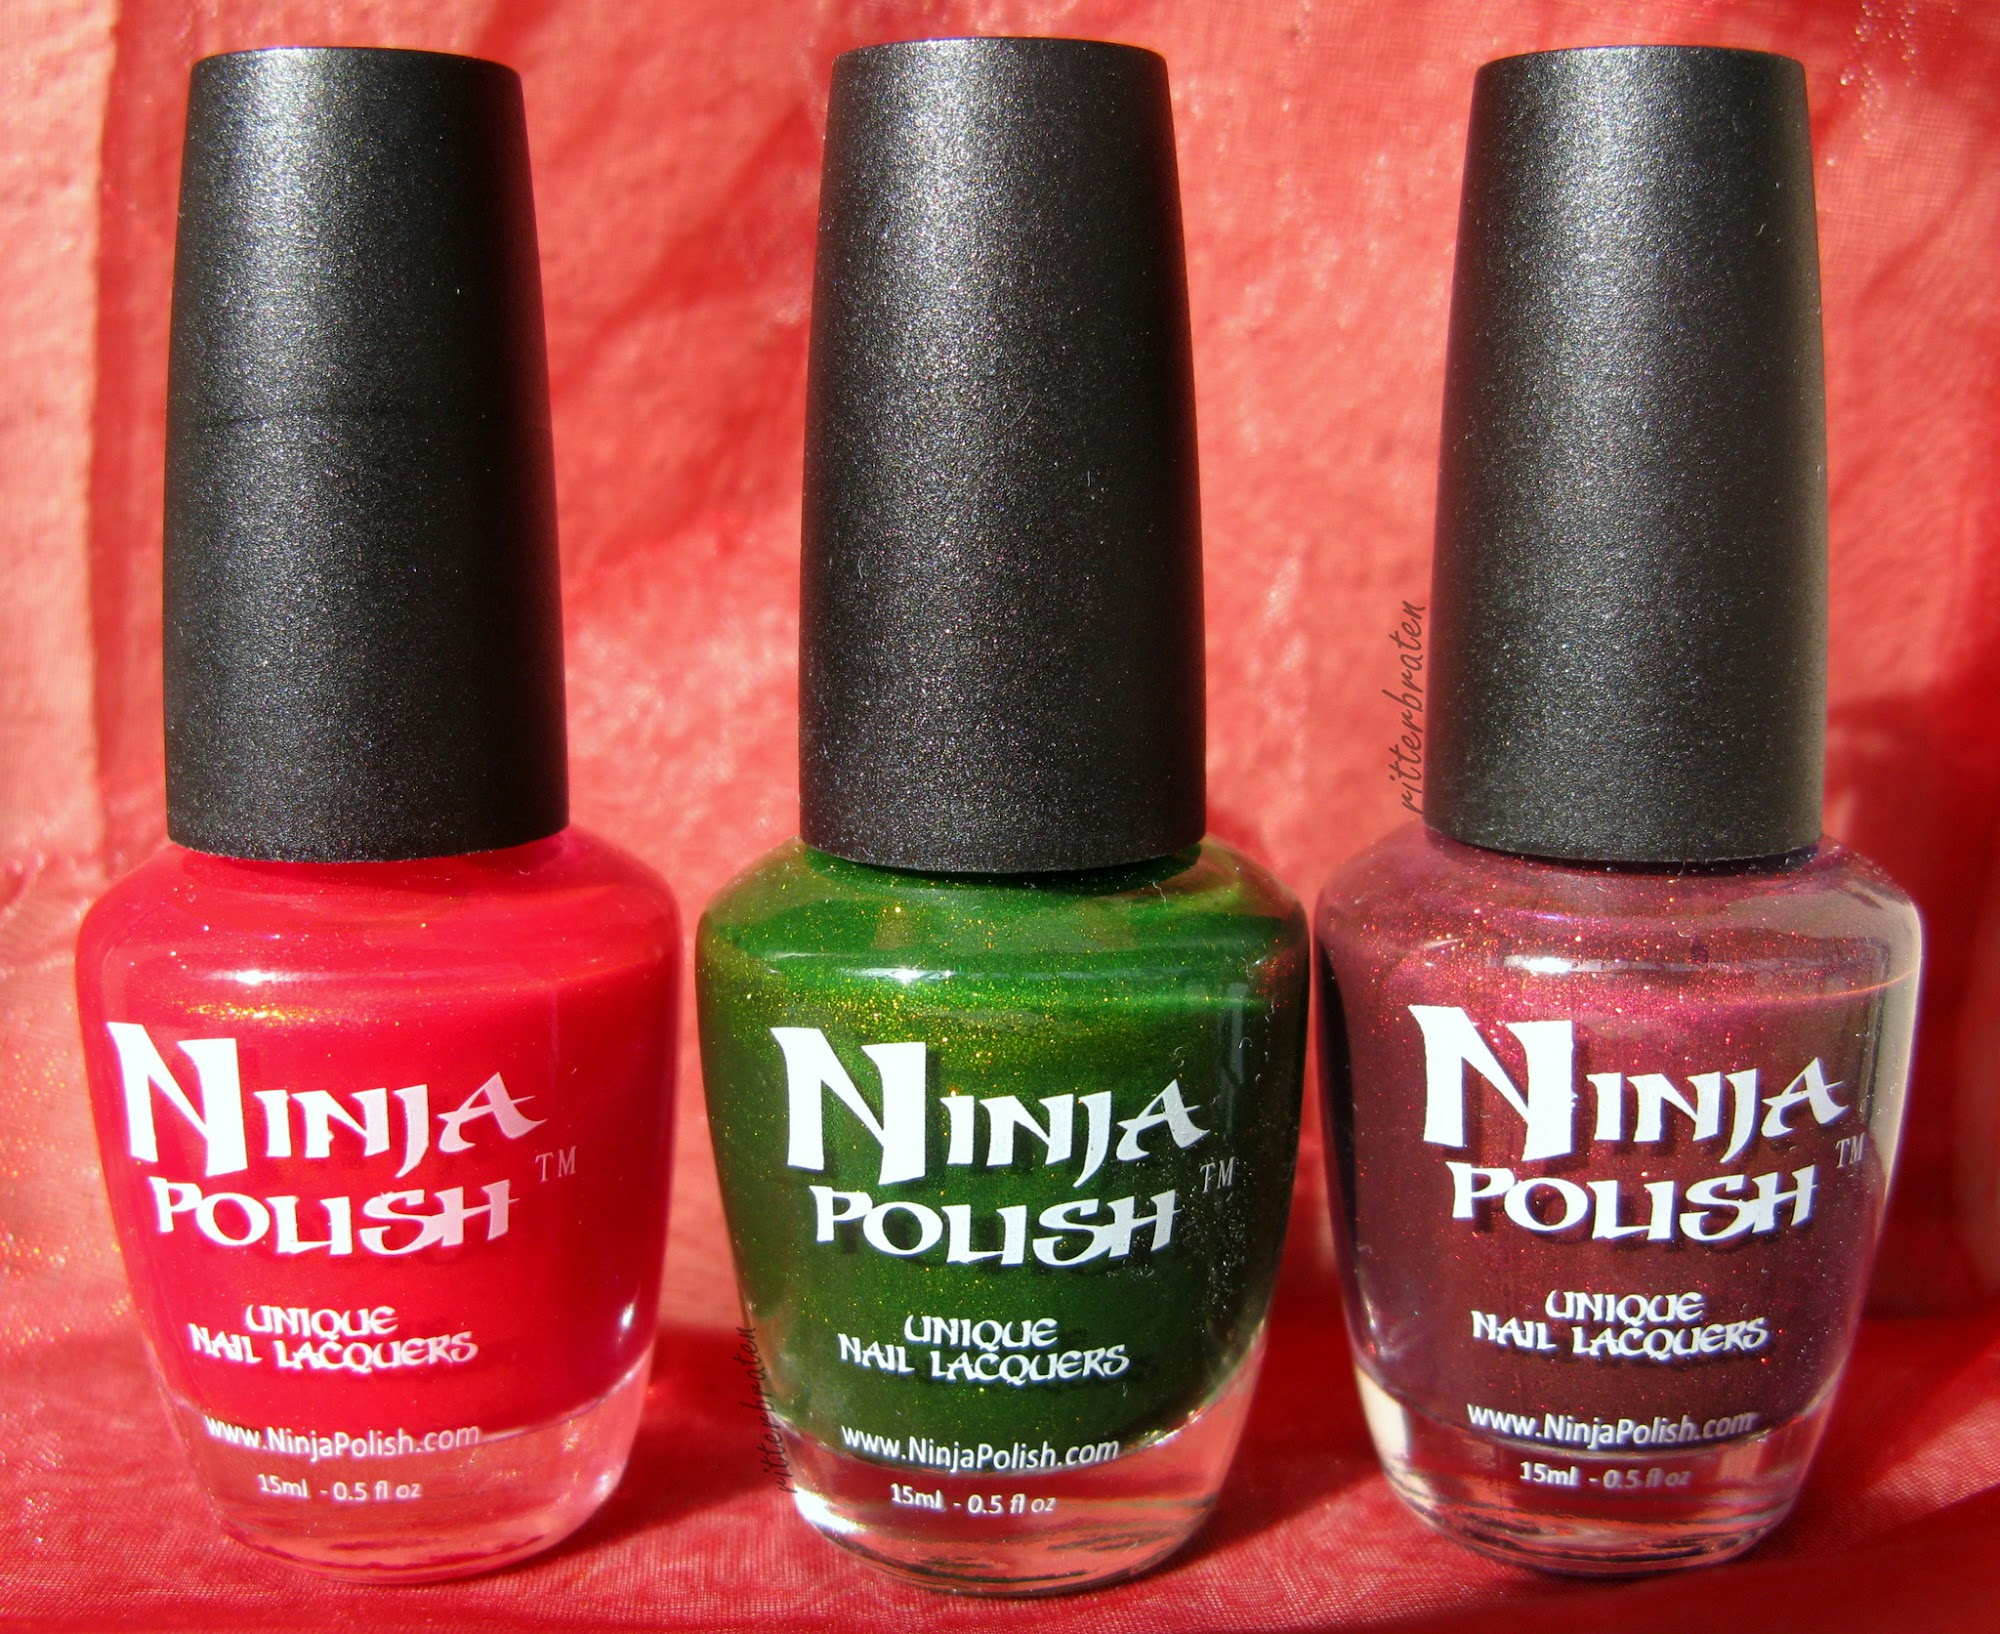 Ninja polish Enigma collection